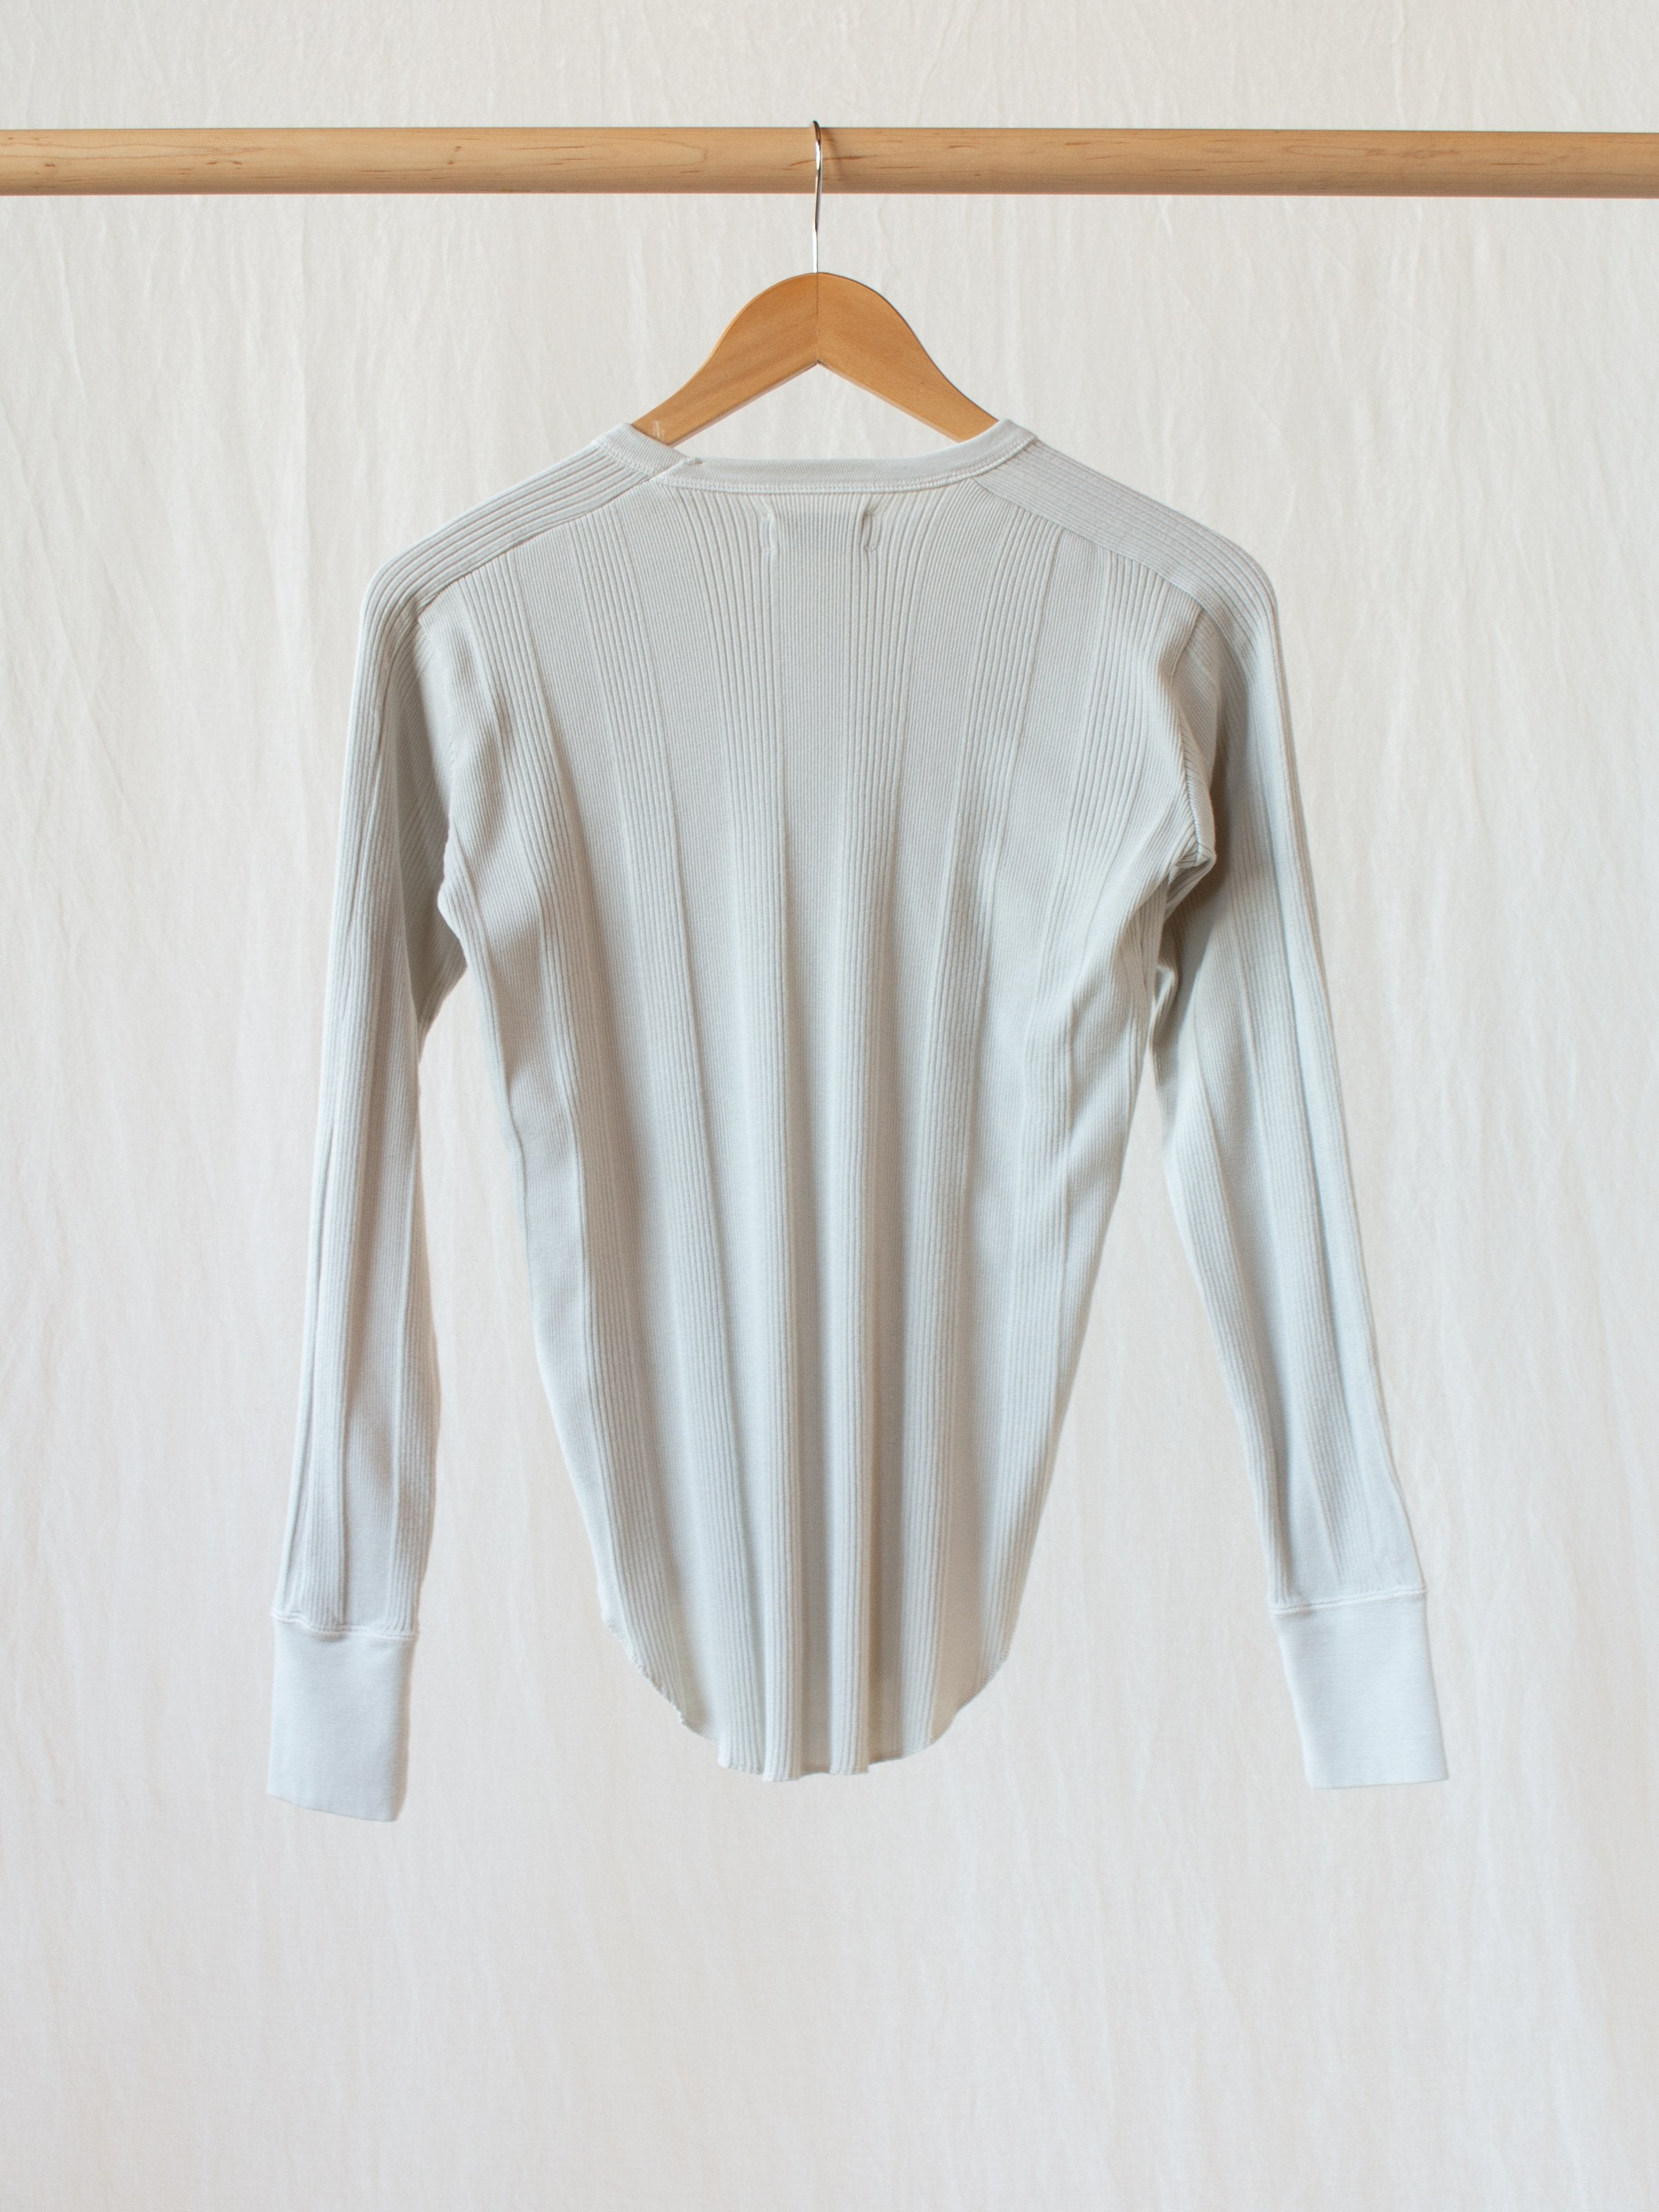 Namu Shop - Phlannel Organic Cotton Rib Knit